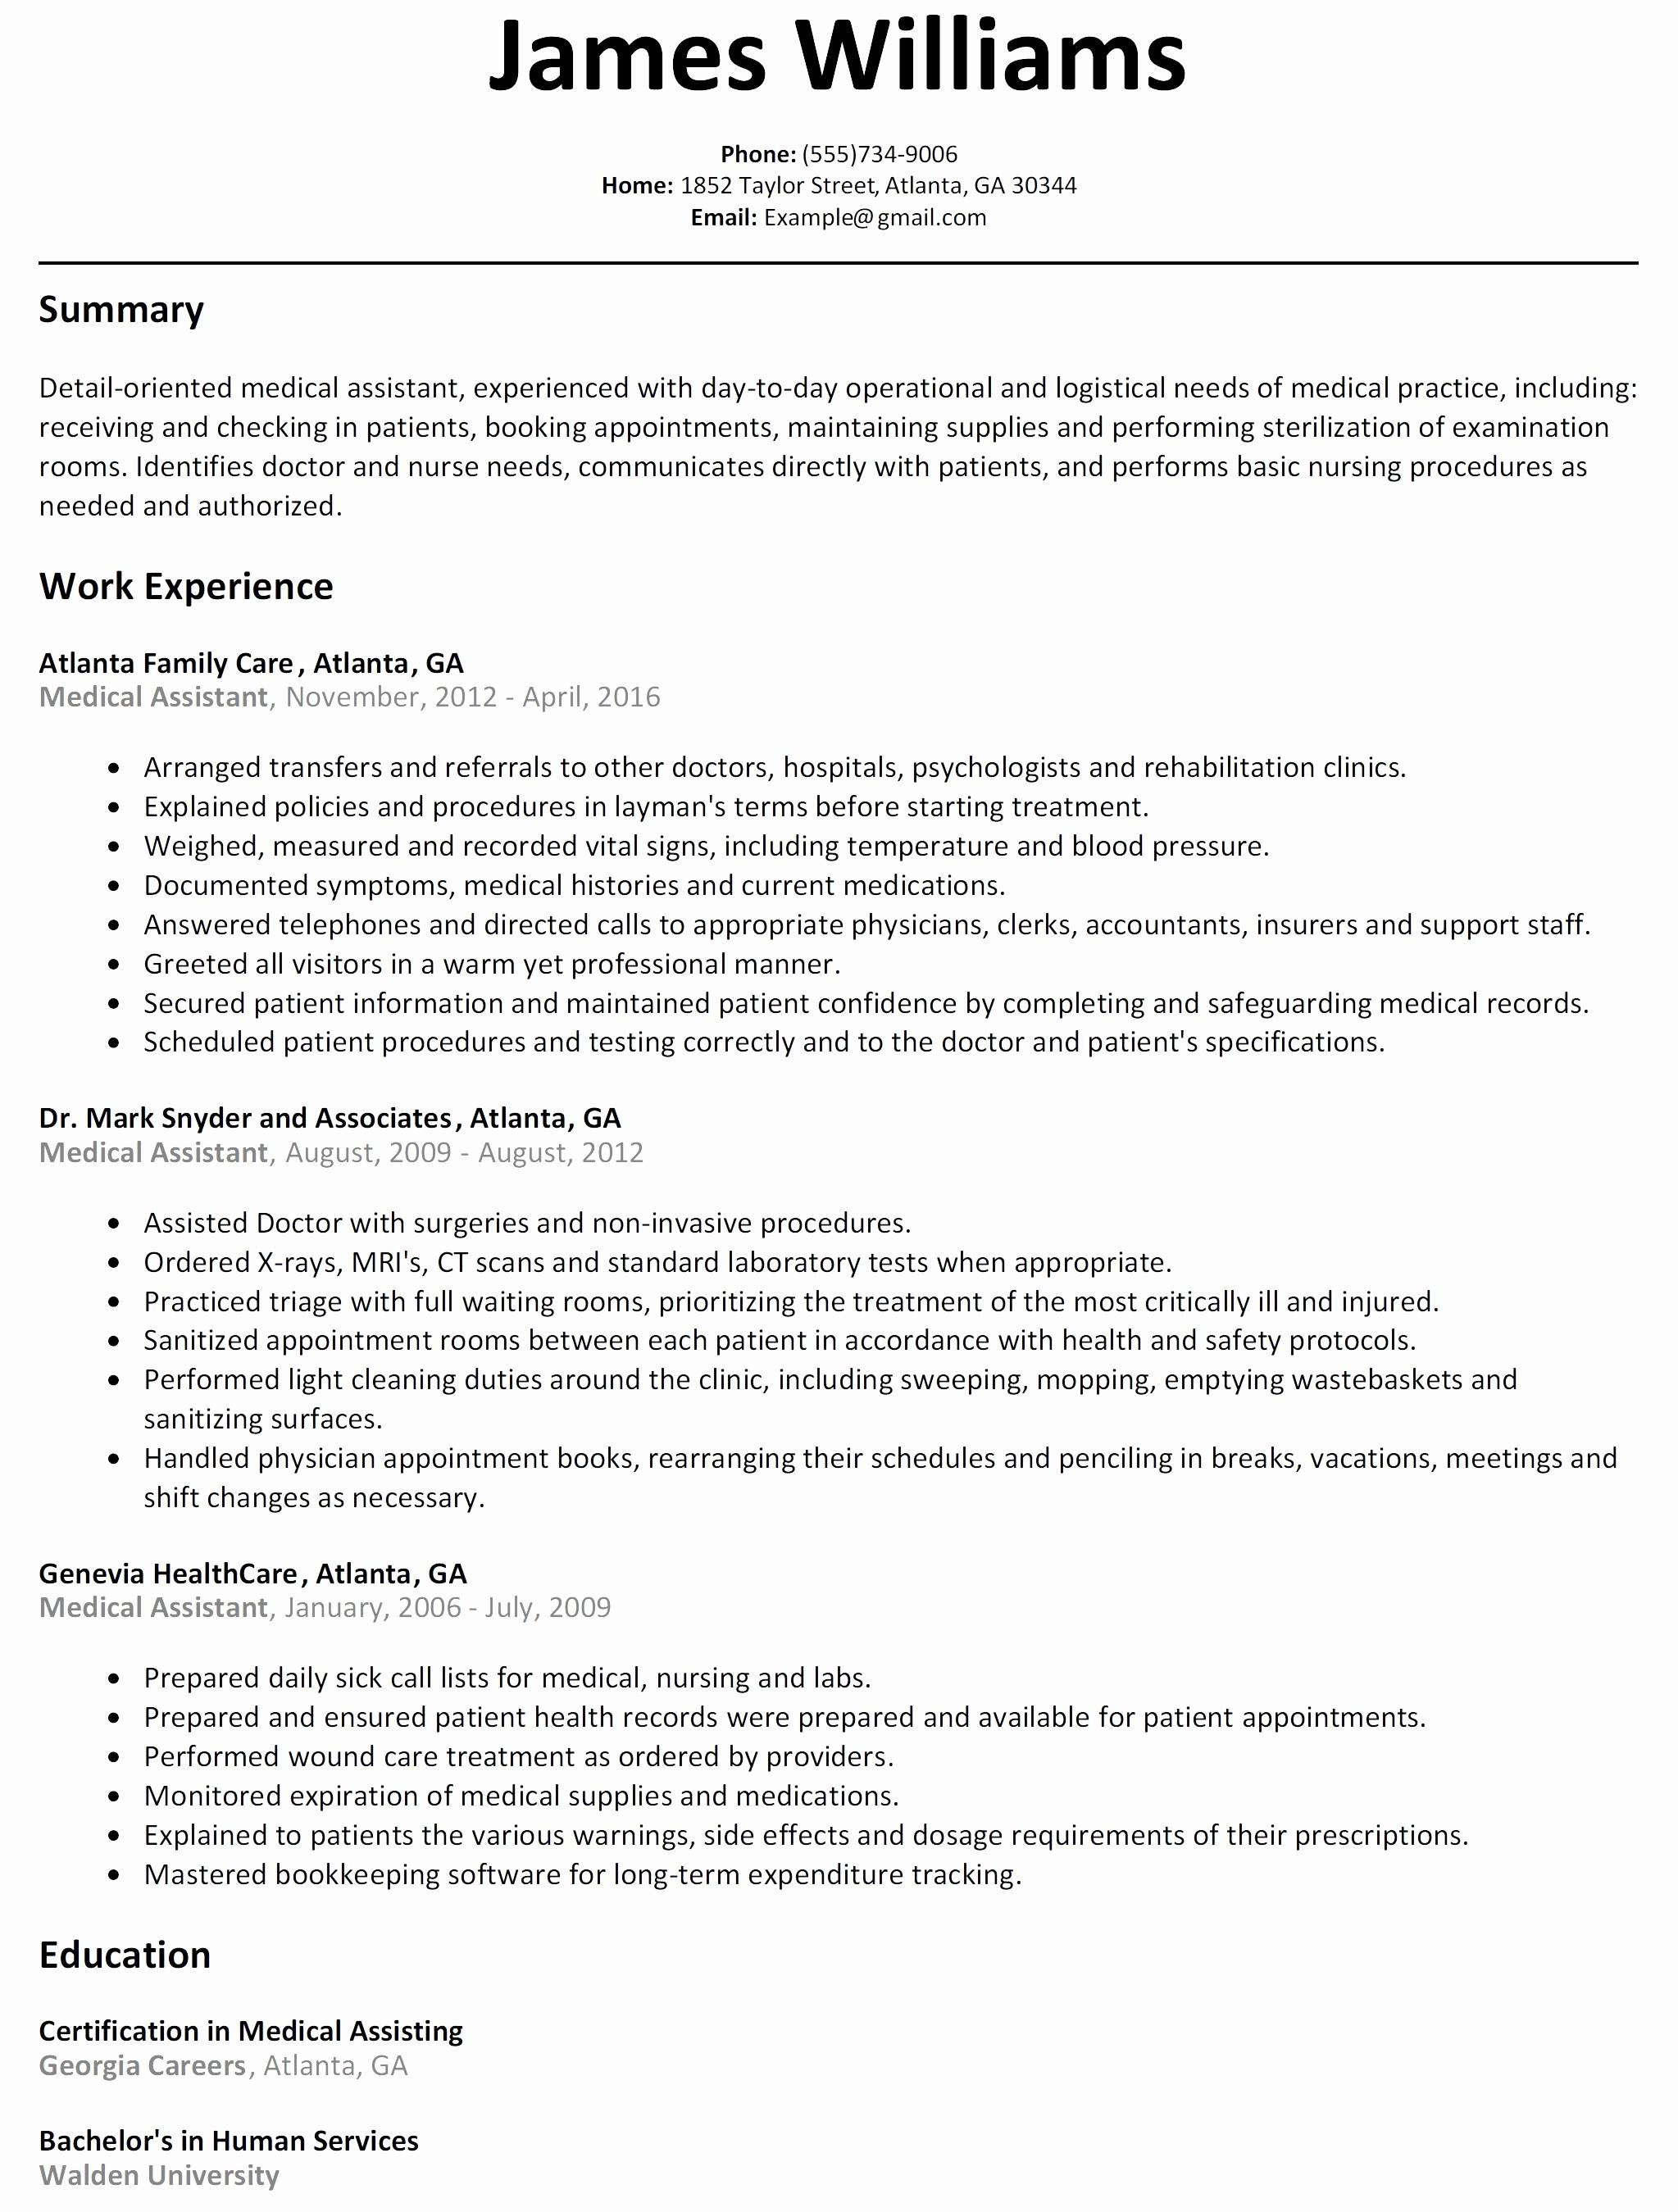 Health Care Business Analyst Resume - 19 Healthcare Business Analyst Resume